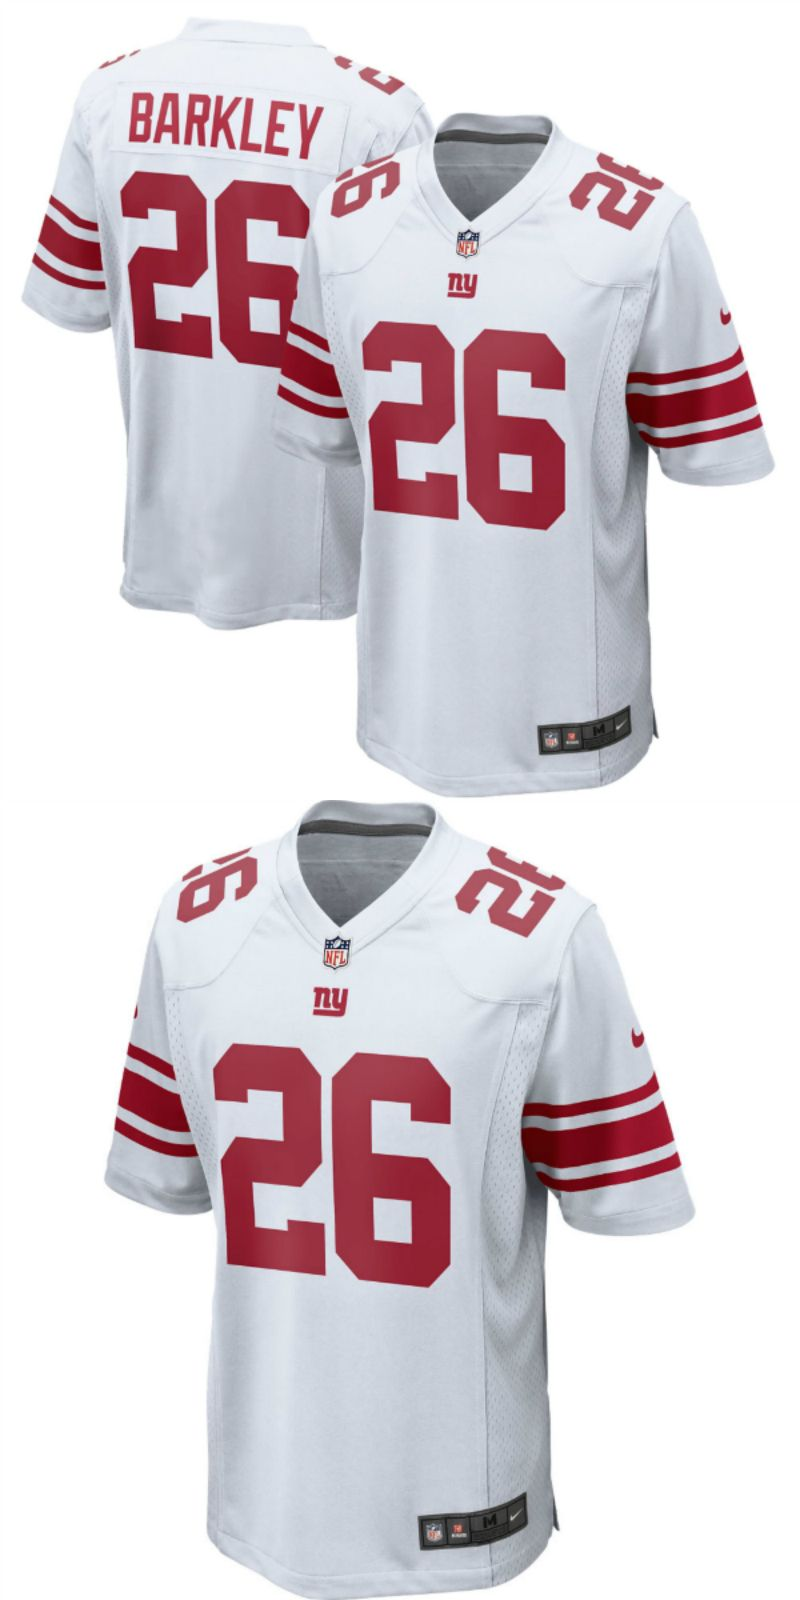 new product 8d773 fd50e 2019 的UP TO 70% OFF. Saquon Barkley New York Giants Nike ...